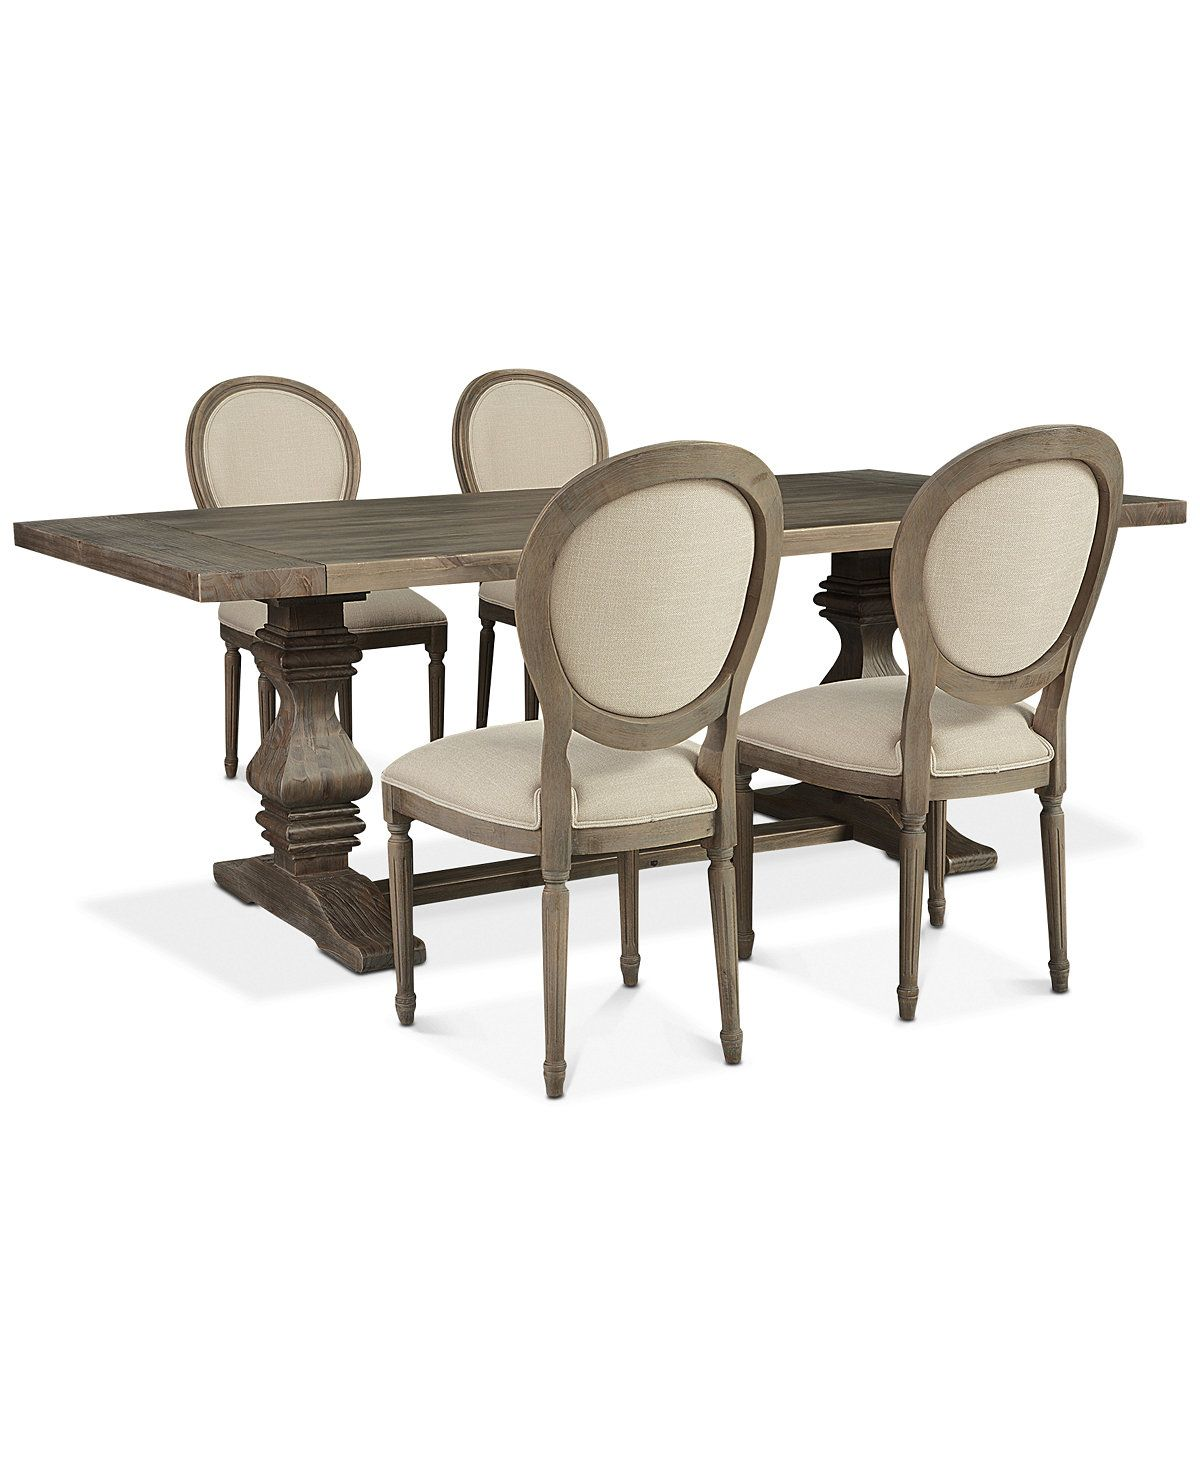 Furniture Tristan Trestle Dining Furniture 5 Pc Set Trestle